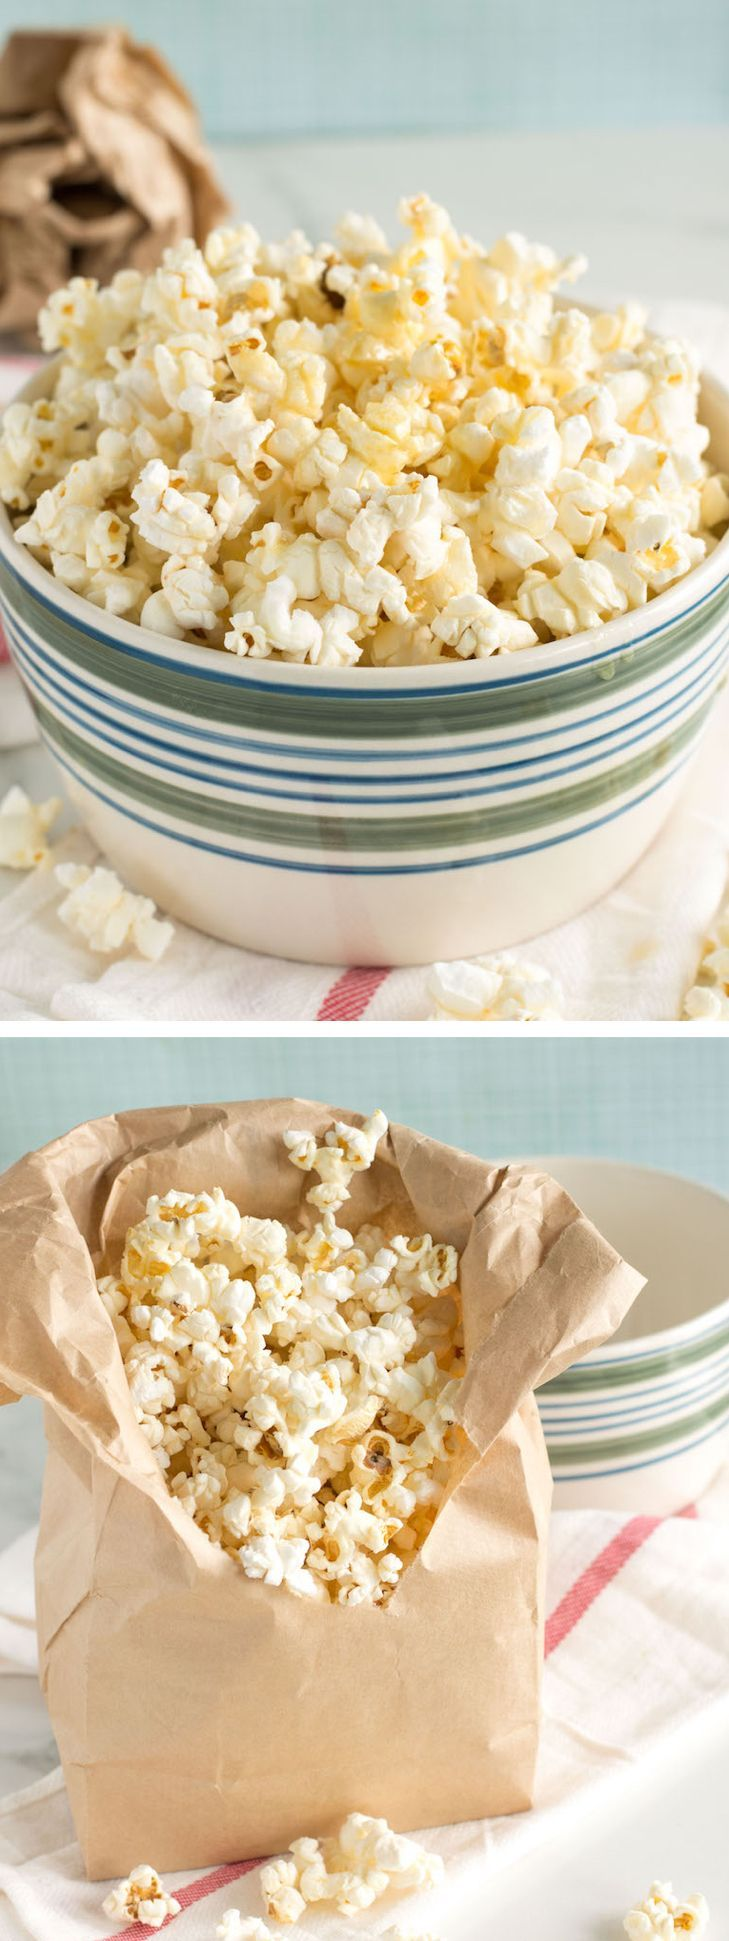 Homemade Sweet and Salty Popcorn | http://nourishedtheblog.com | Freshly popped popcorn drizzled with butter and honey and vanilla and sea salt is the ultimate in sweet and salty. This popcorn snack is super easy to make and gluten free too! Click for the